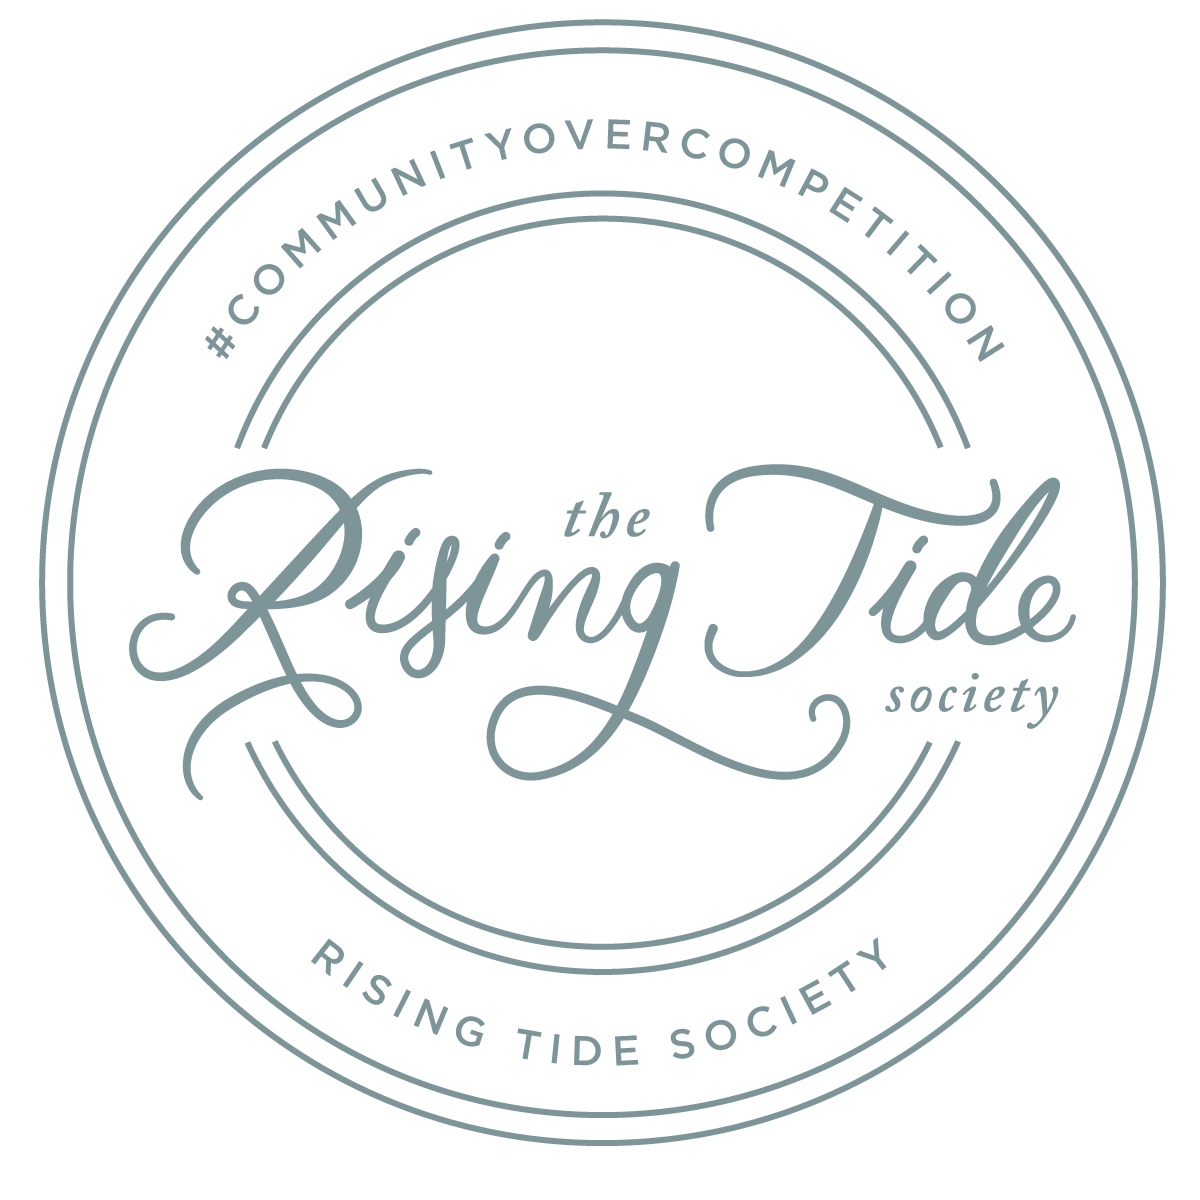 Rising Tide Society - Community over Competition